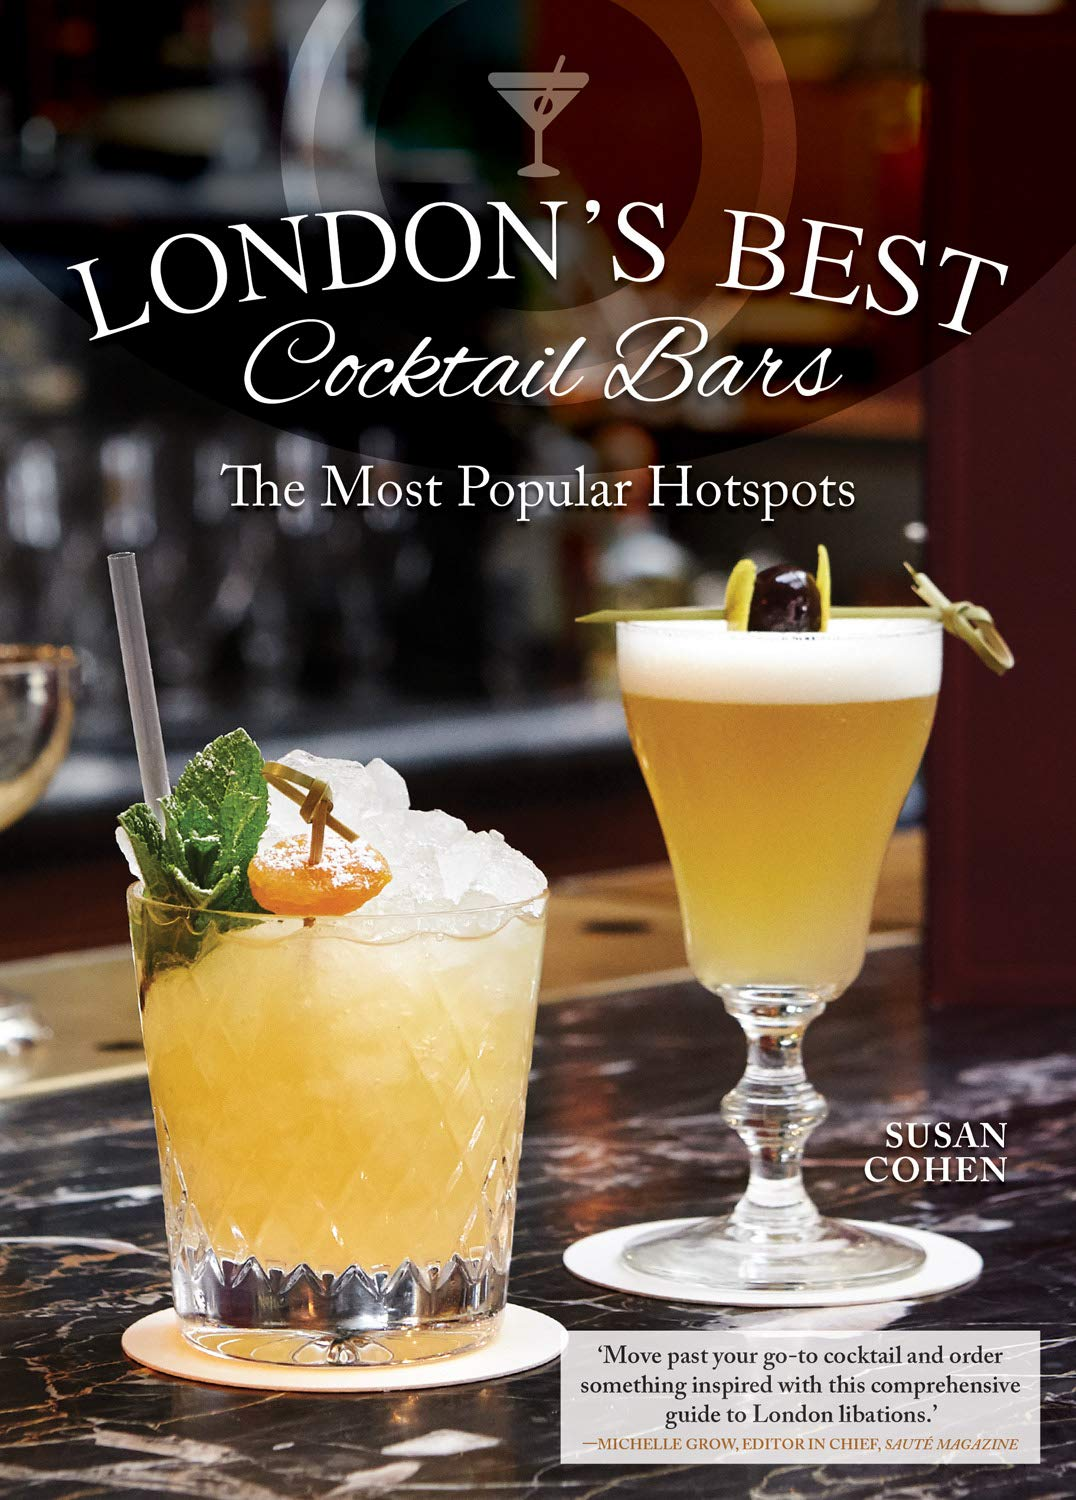 Bruja On Books: London's Best Cocktail Bars- The Most Popular Hotspots